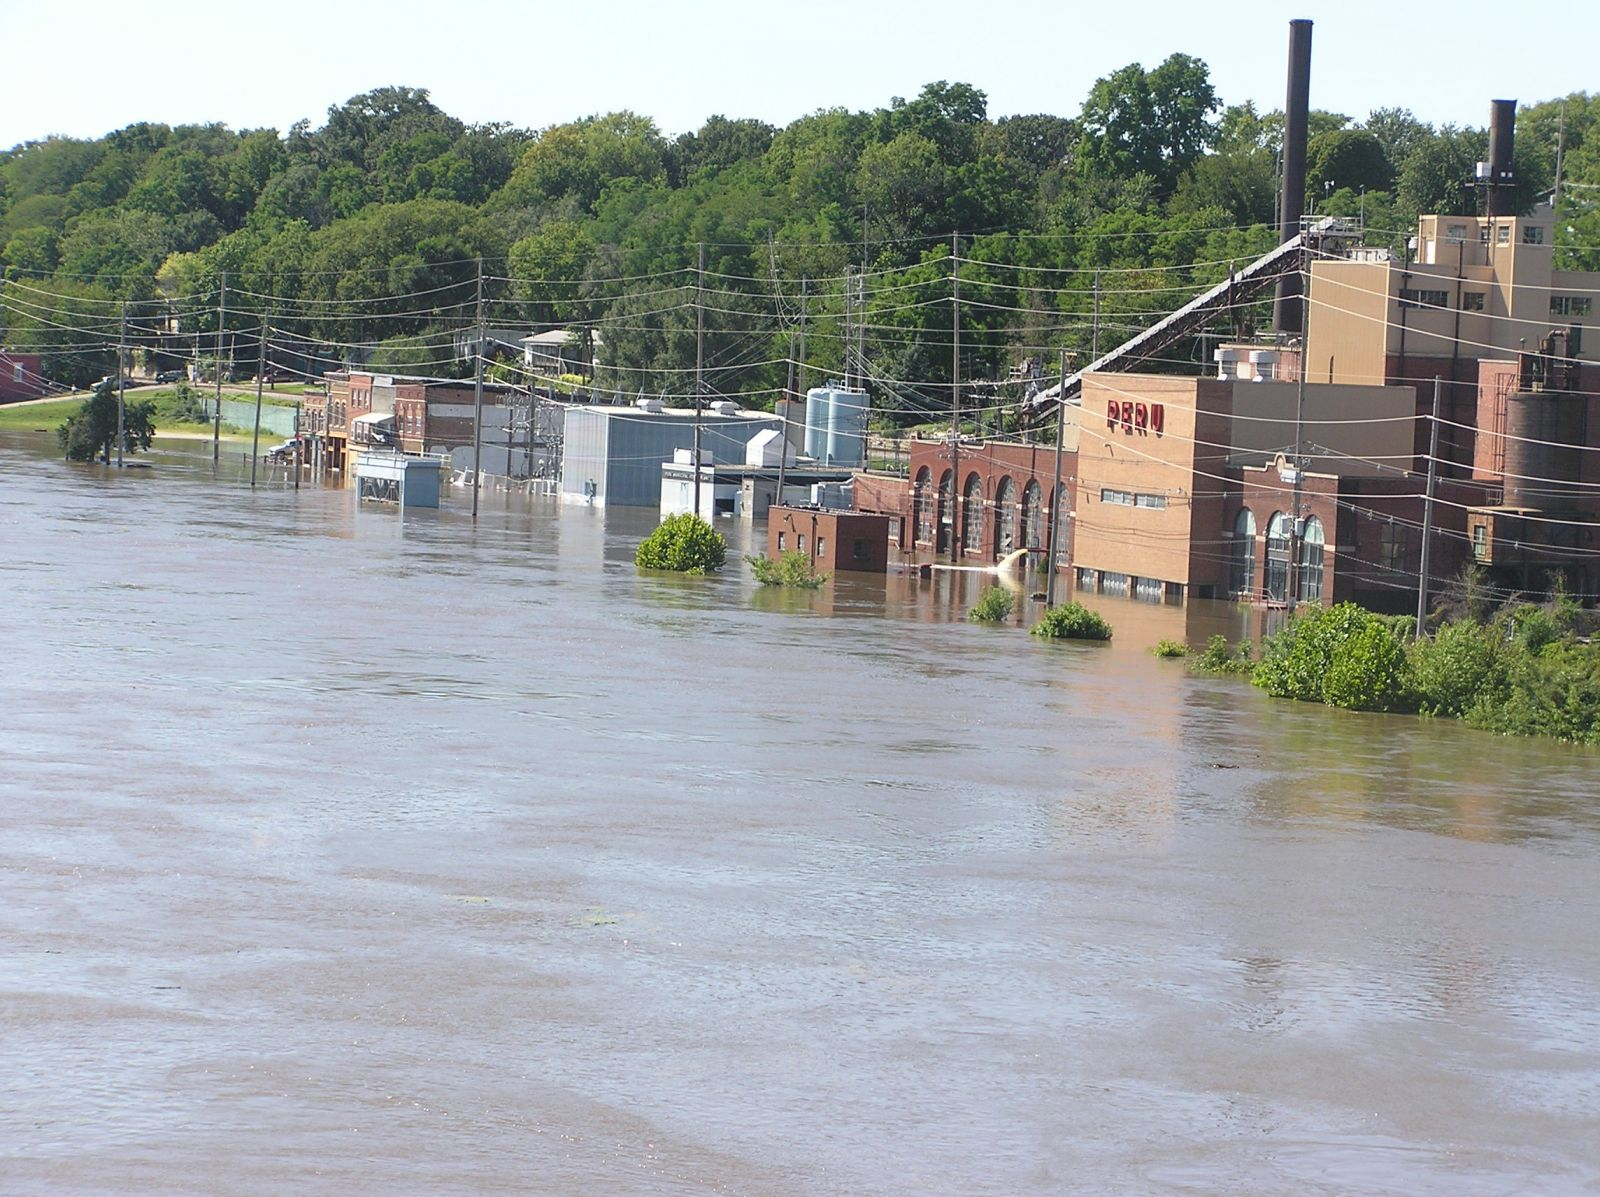 Flooding on the Illinois River at Peru